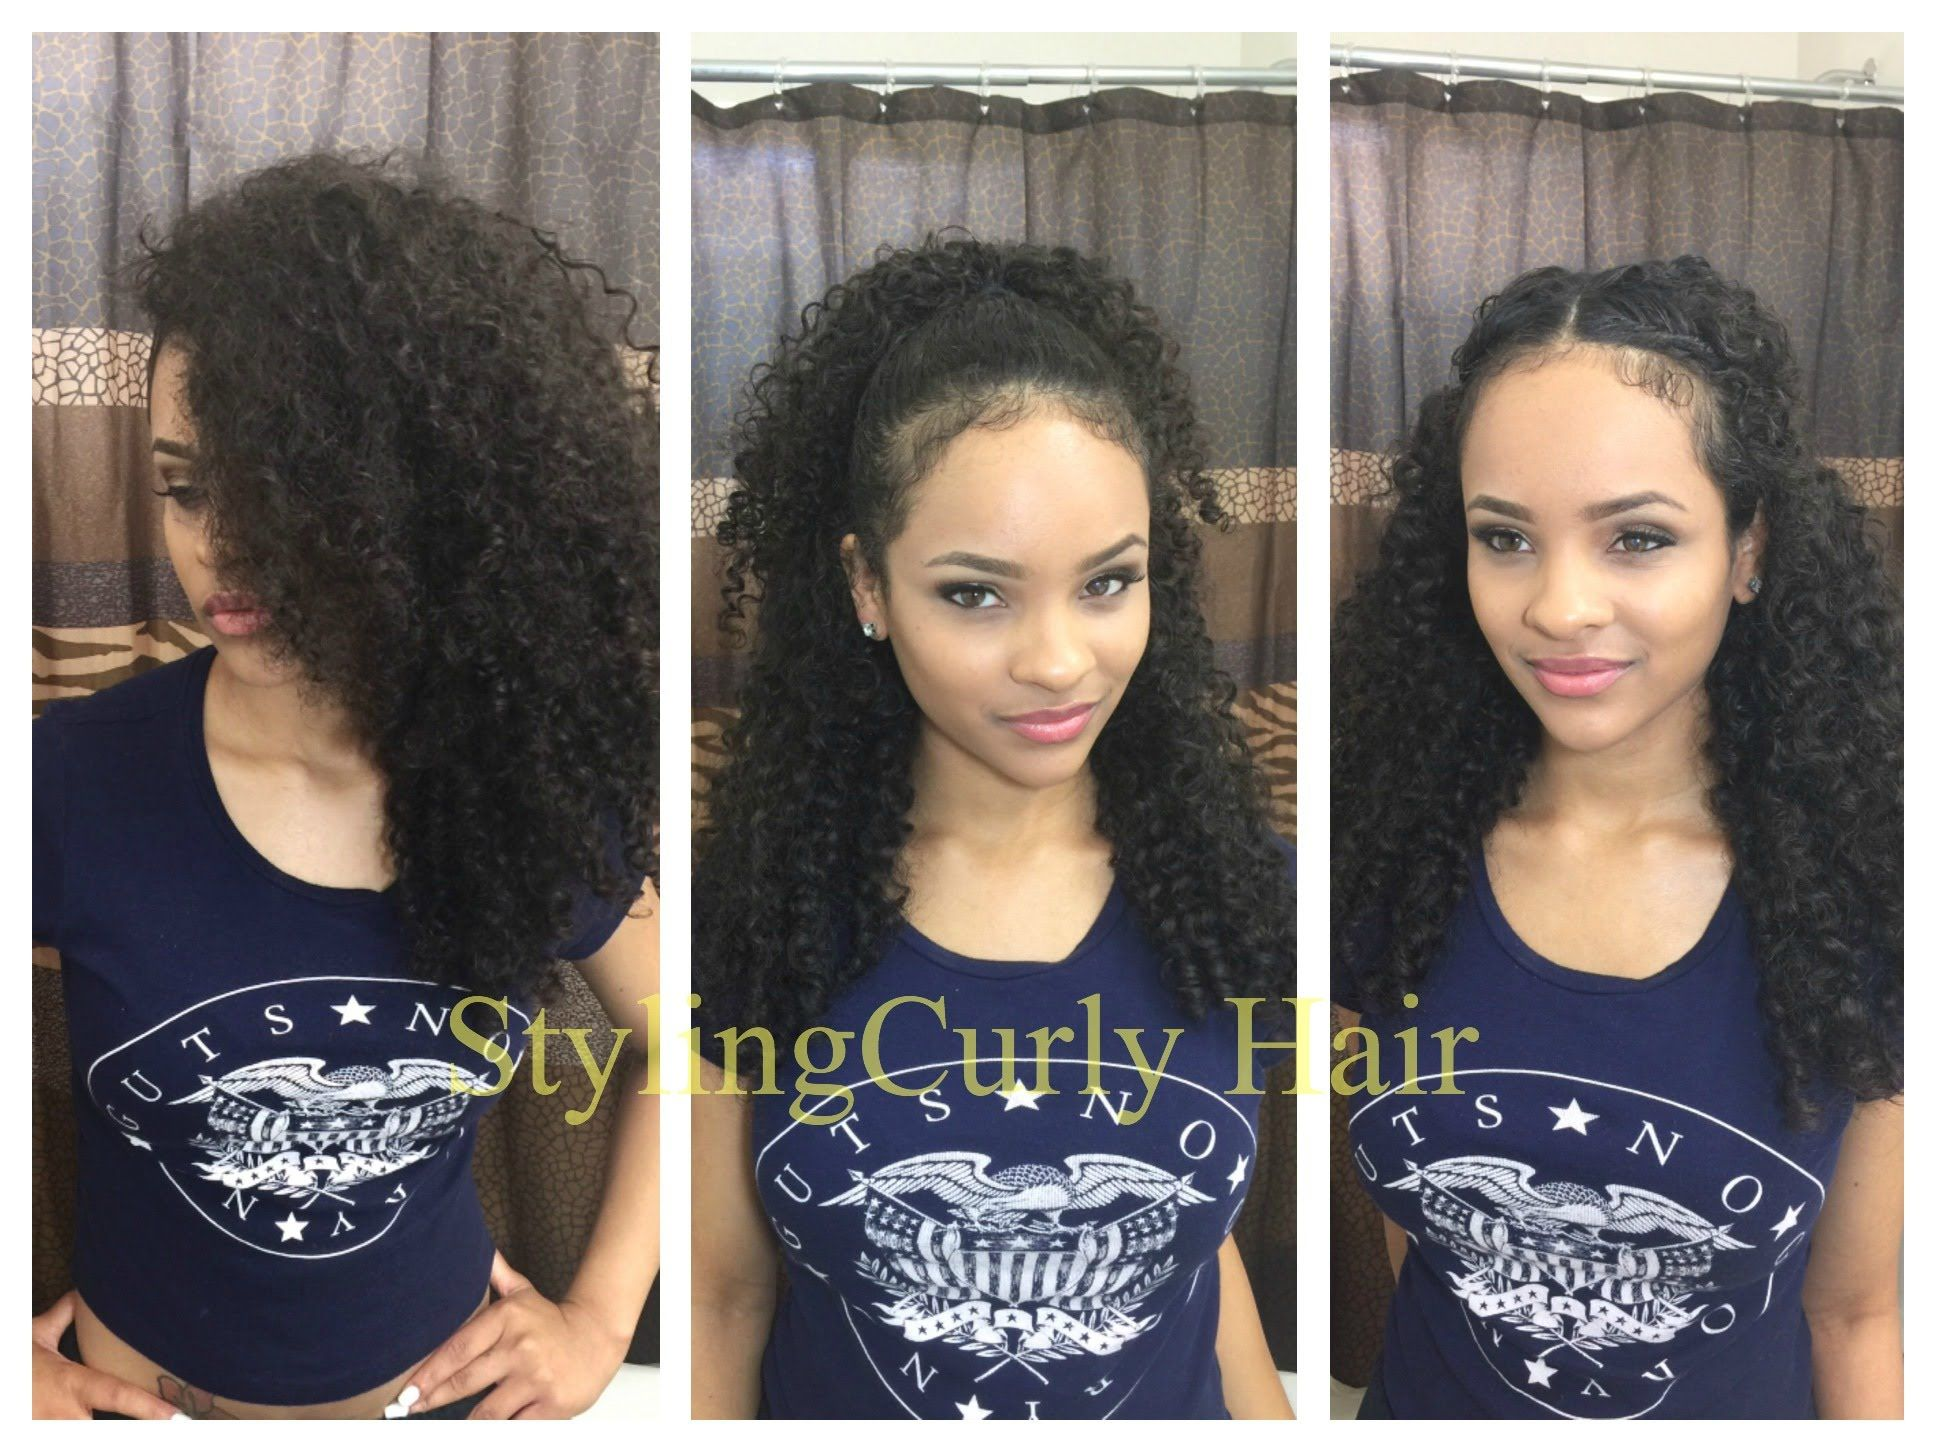 6 Quick And Simple Ways To Style Curly Hair Sayria Jade Amornai Mixed Curly Hair Curly Hair Styles Naturally Curly Hair Styles